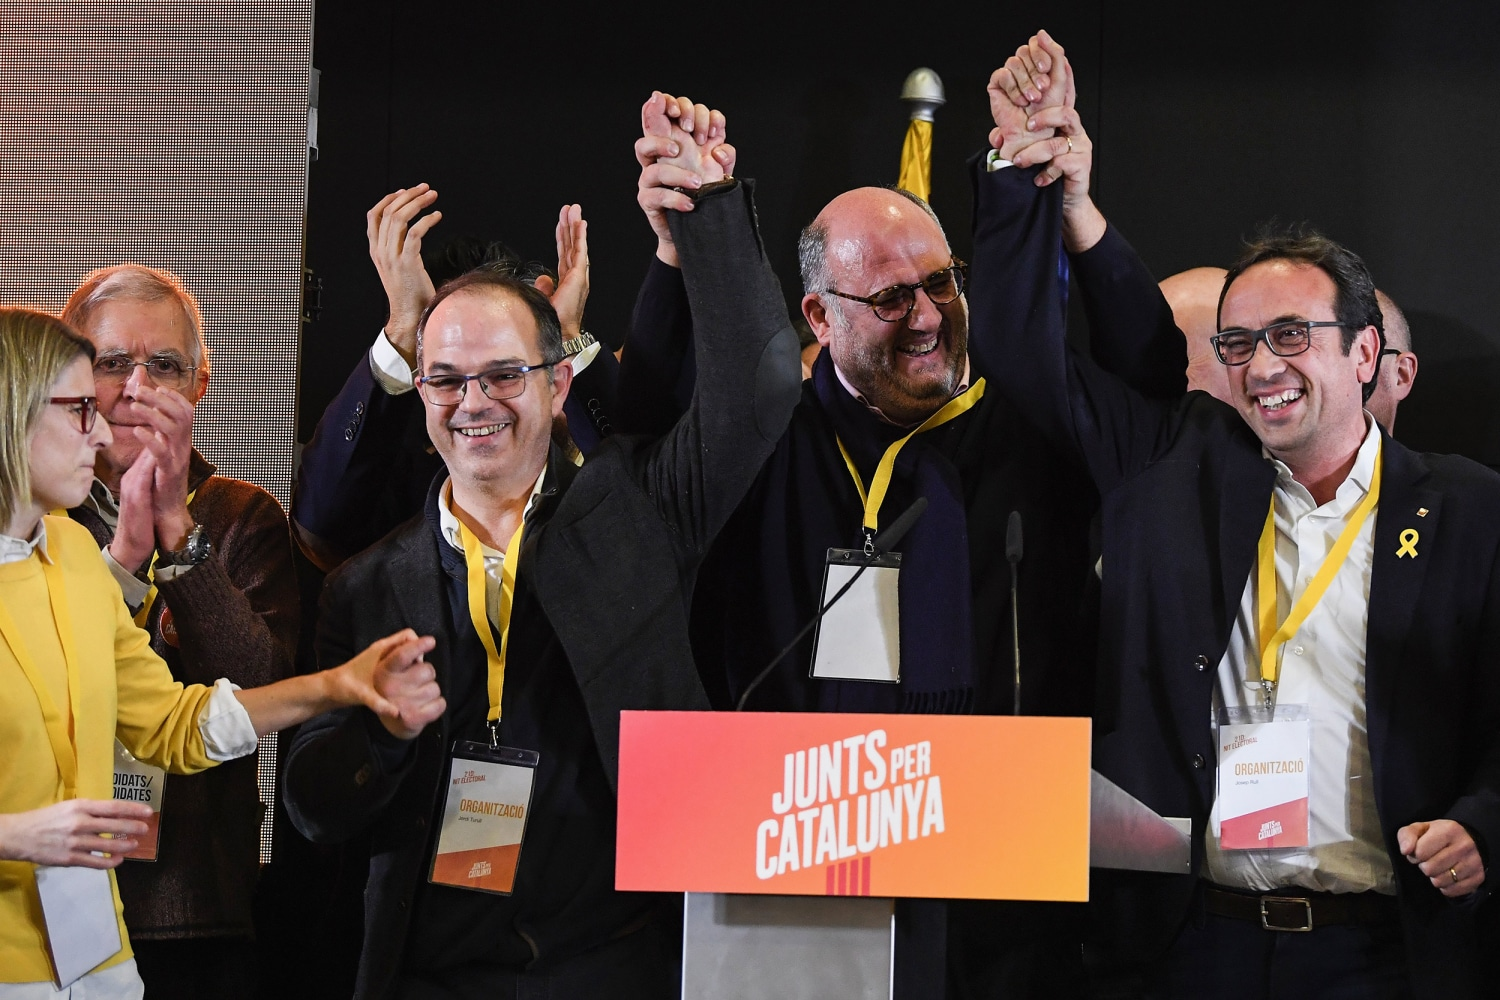 Catalonia separatists parties win slim majority in regional elections